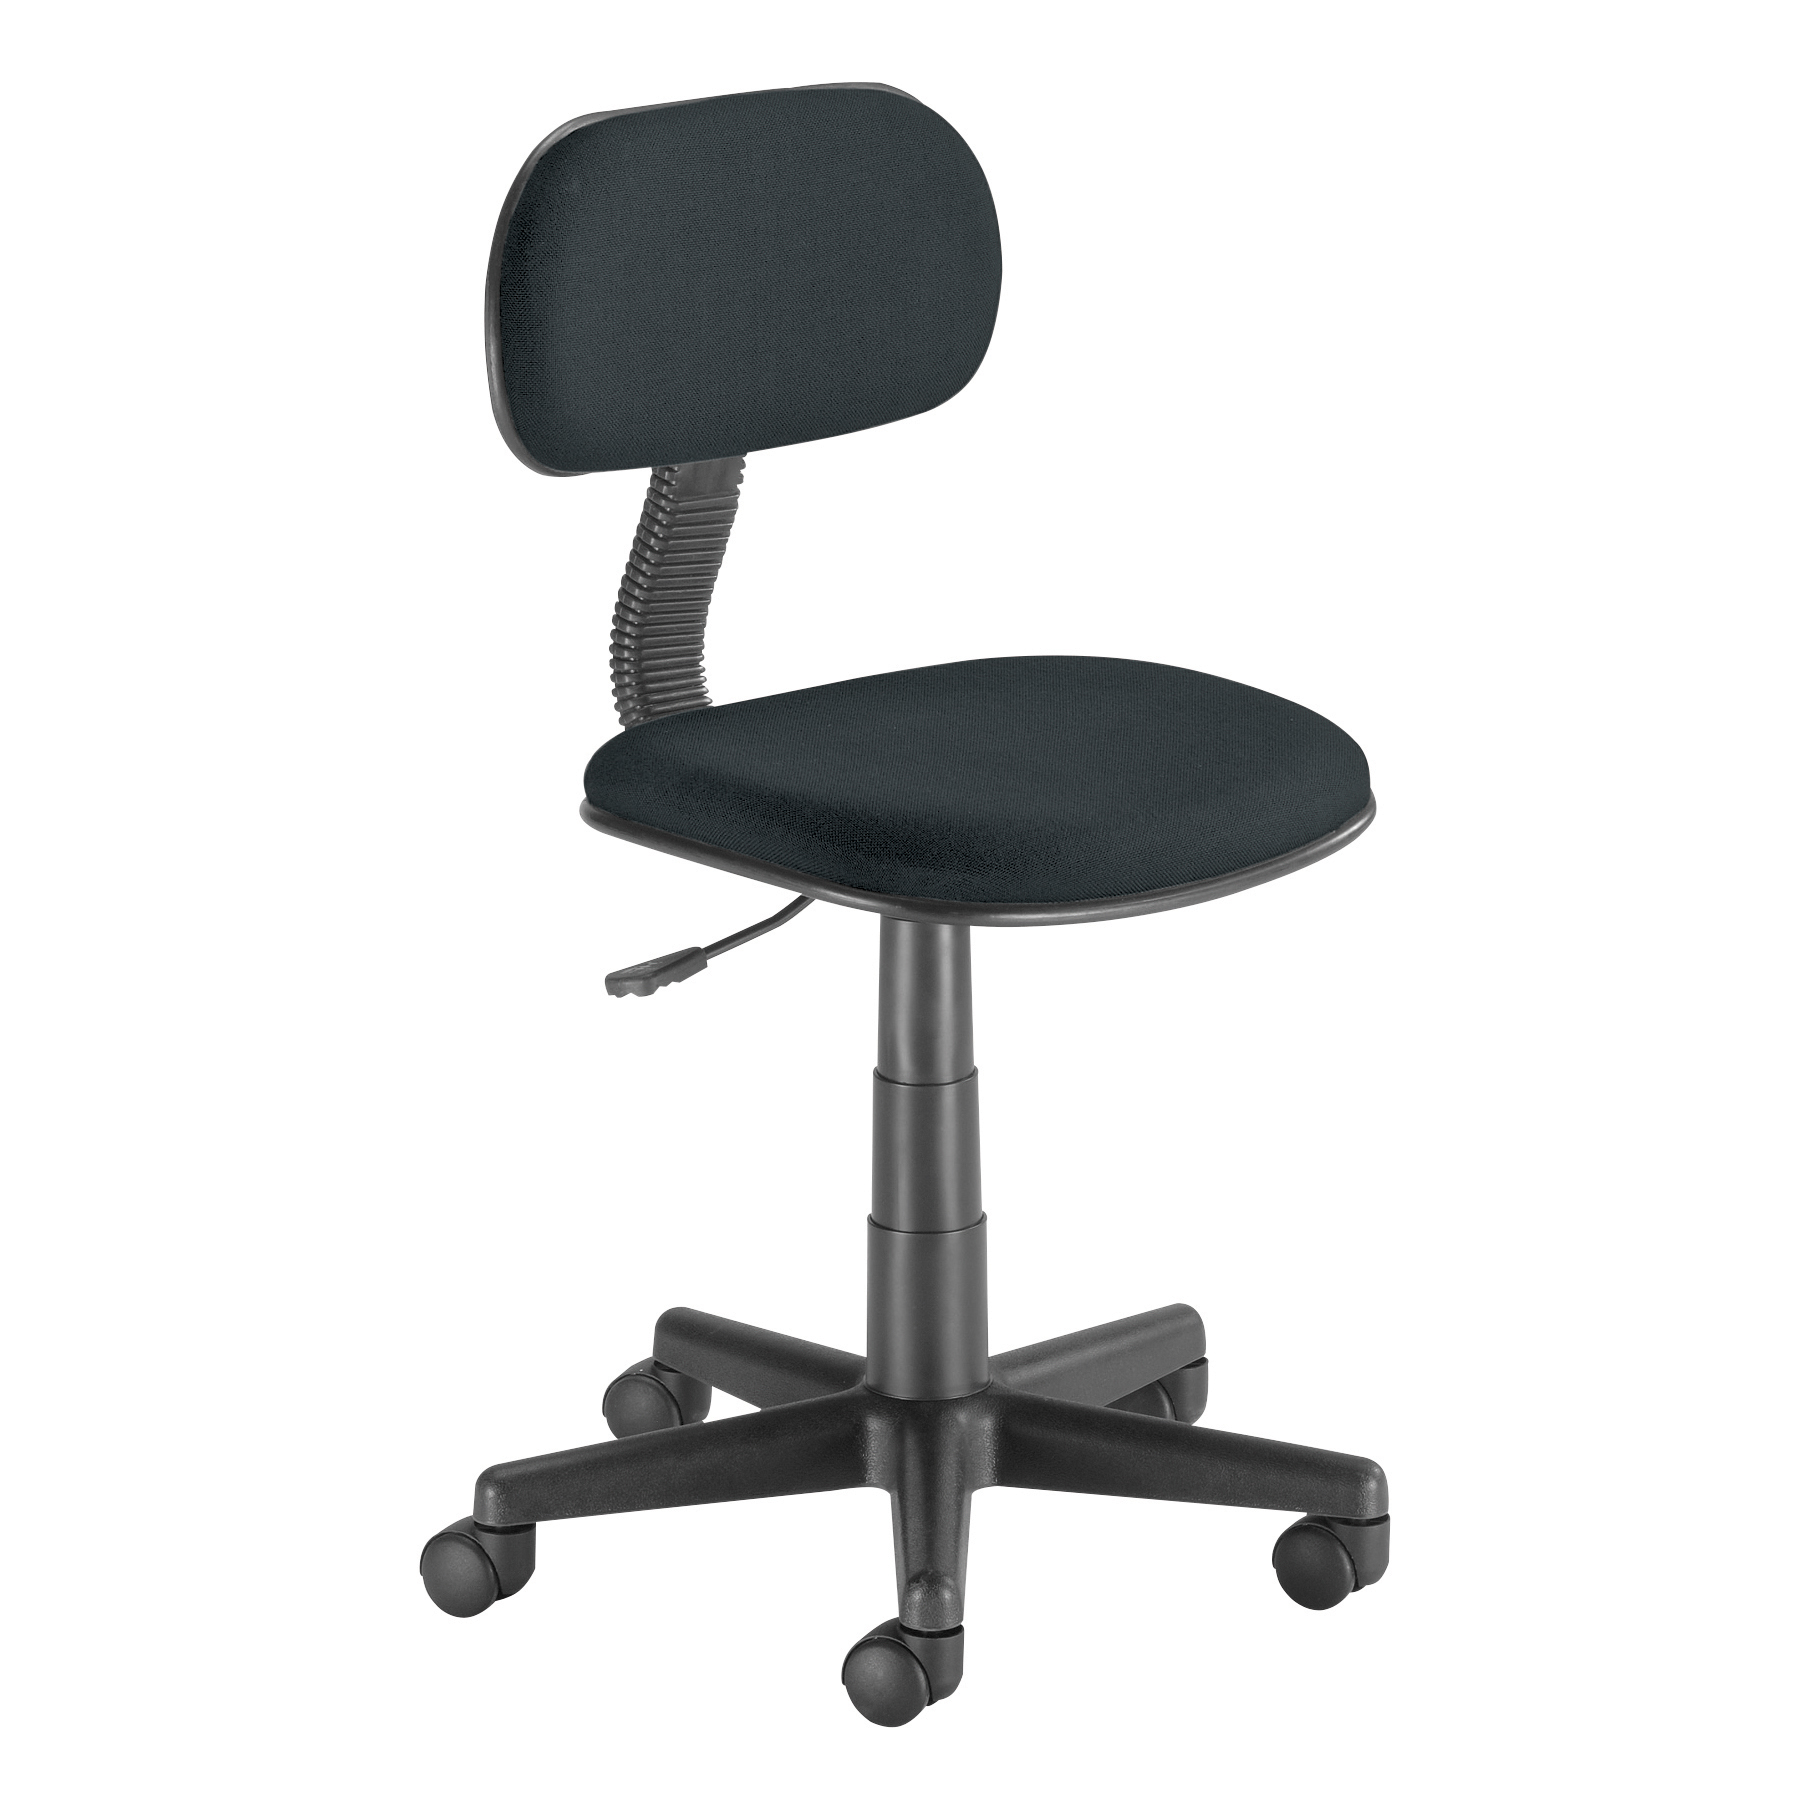 Task seating Trexus Intro Typist Chair Charcoal 410x390x405-520mm Ref 10001-03Charcoal